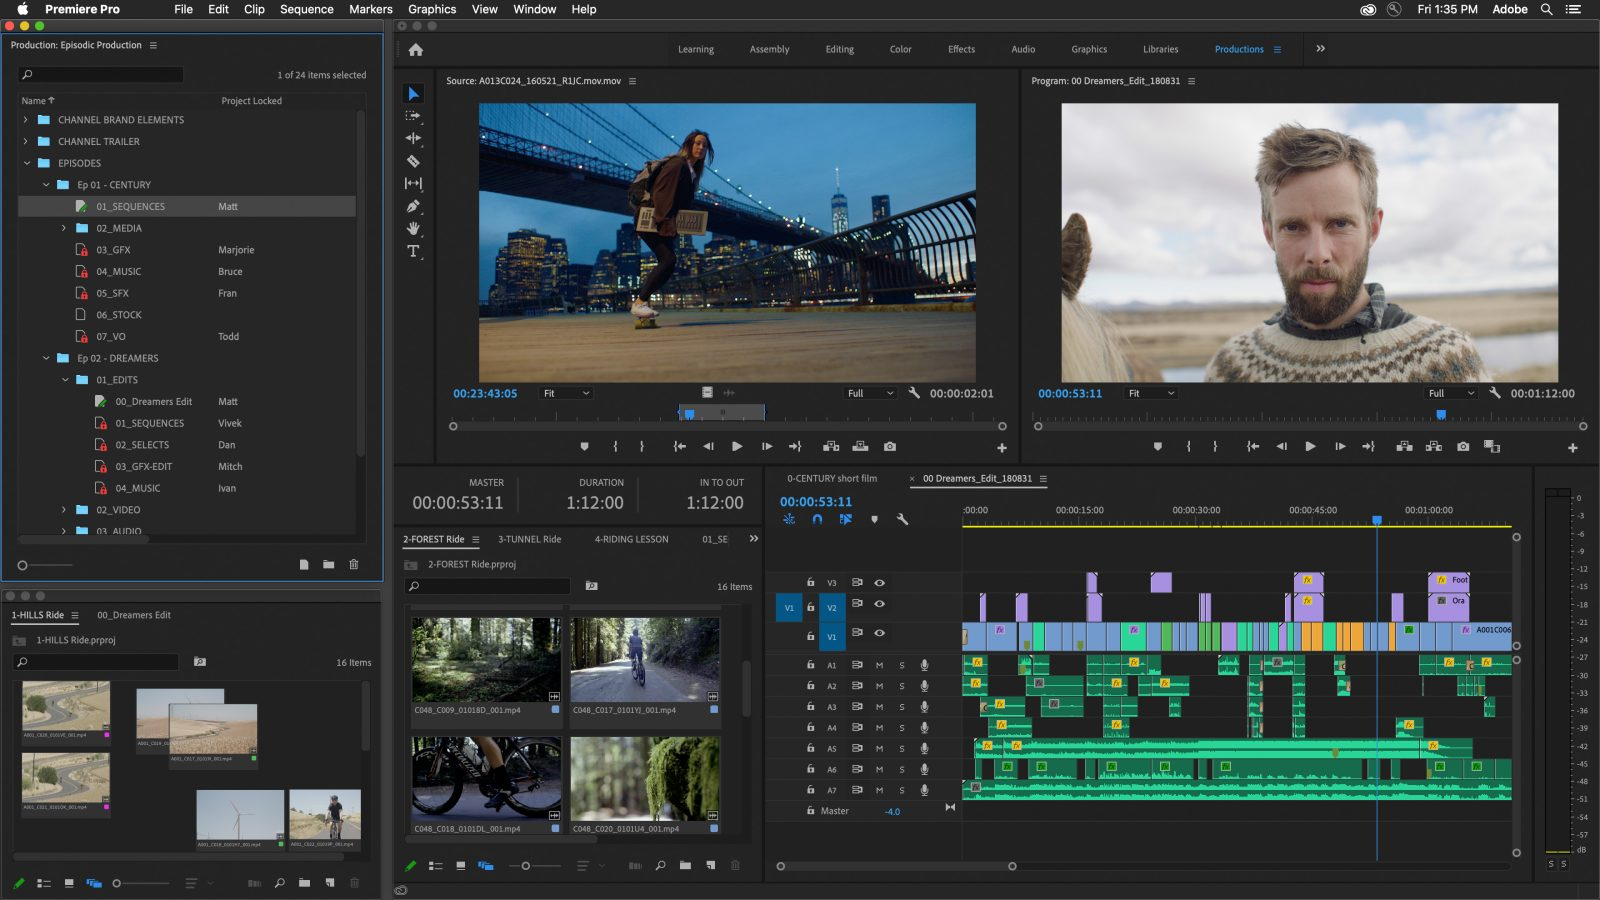 Adobe previews new project management and collaboration tools coming to Premiere Pro